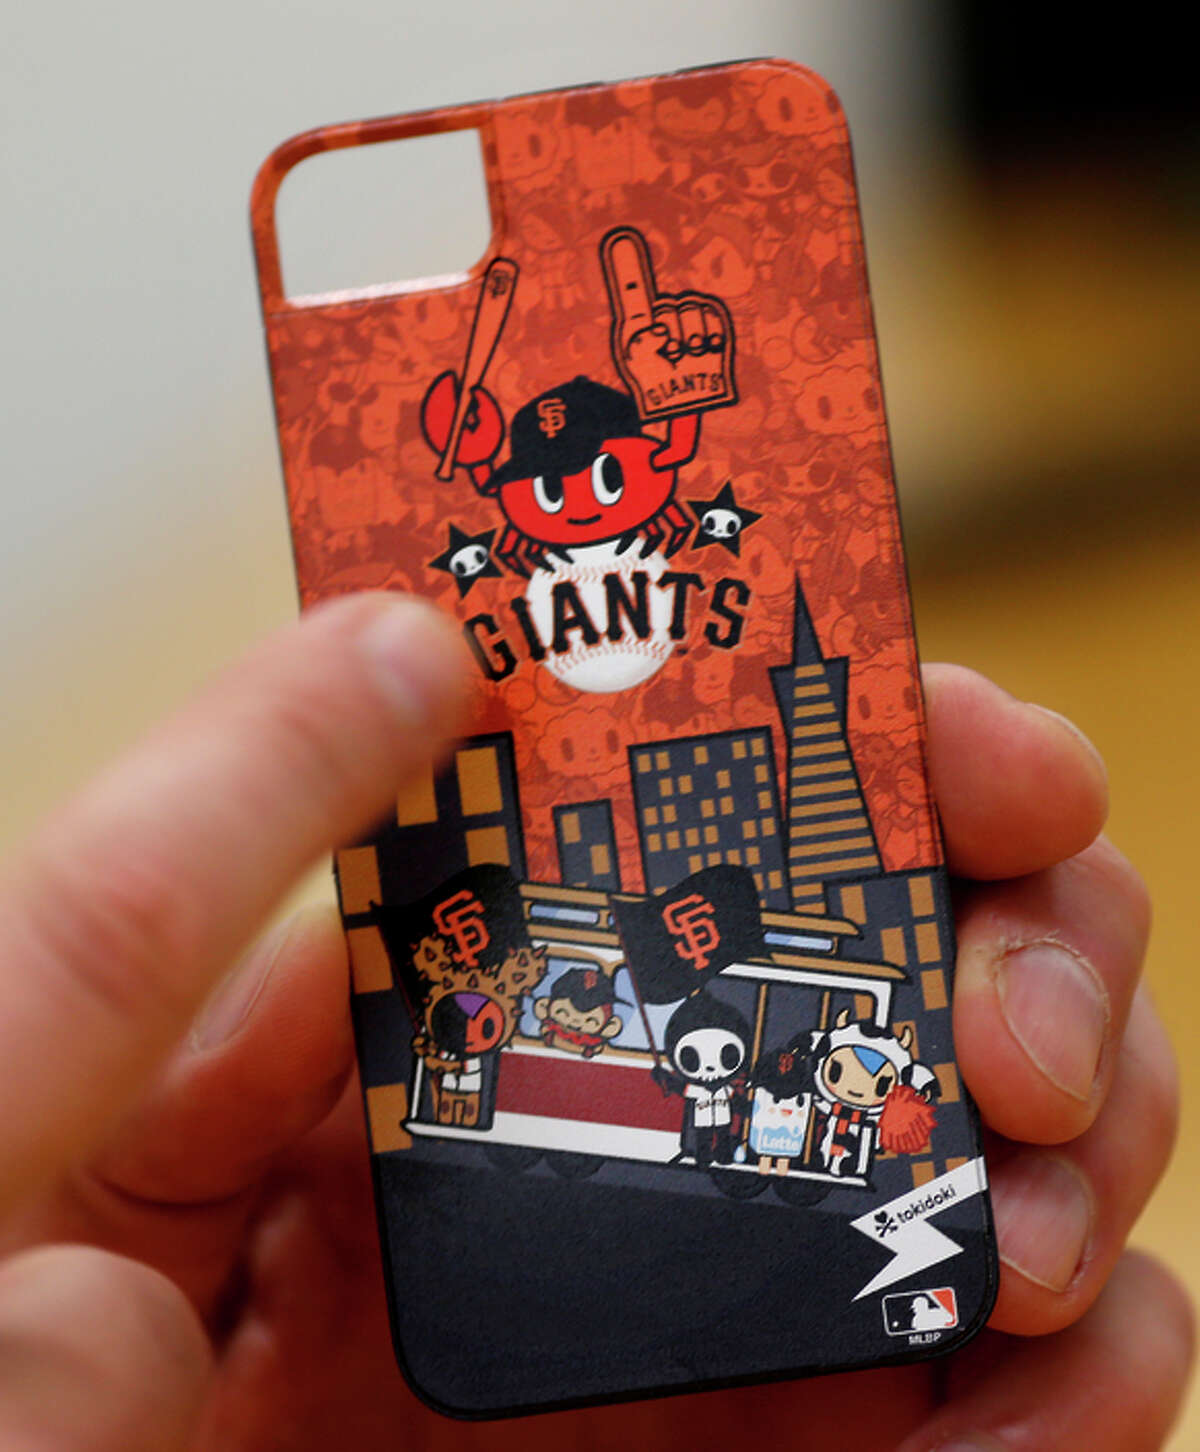 A company called Tokidoki was able to create a smartphone case with the Giants logos and some original design using the Coveroo product.